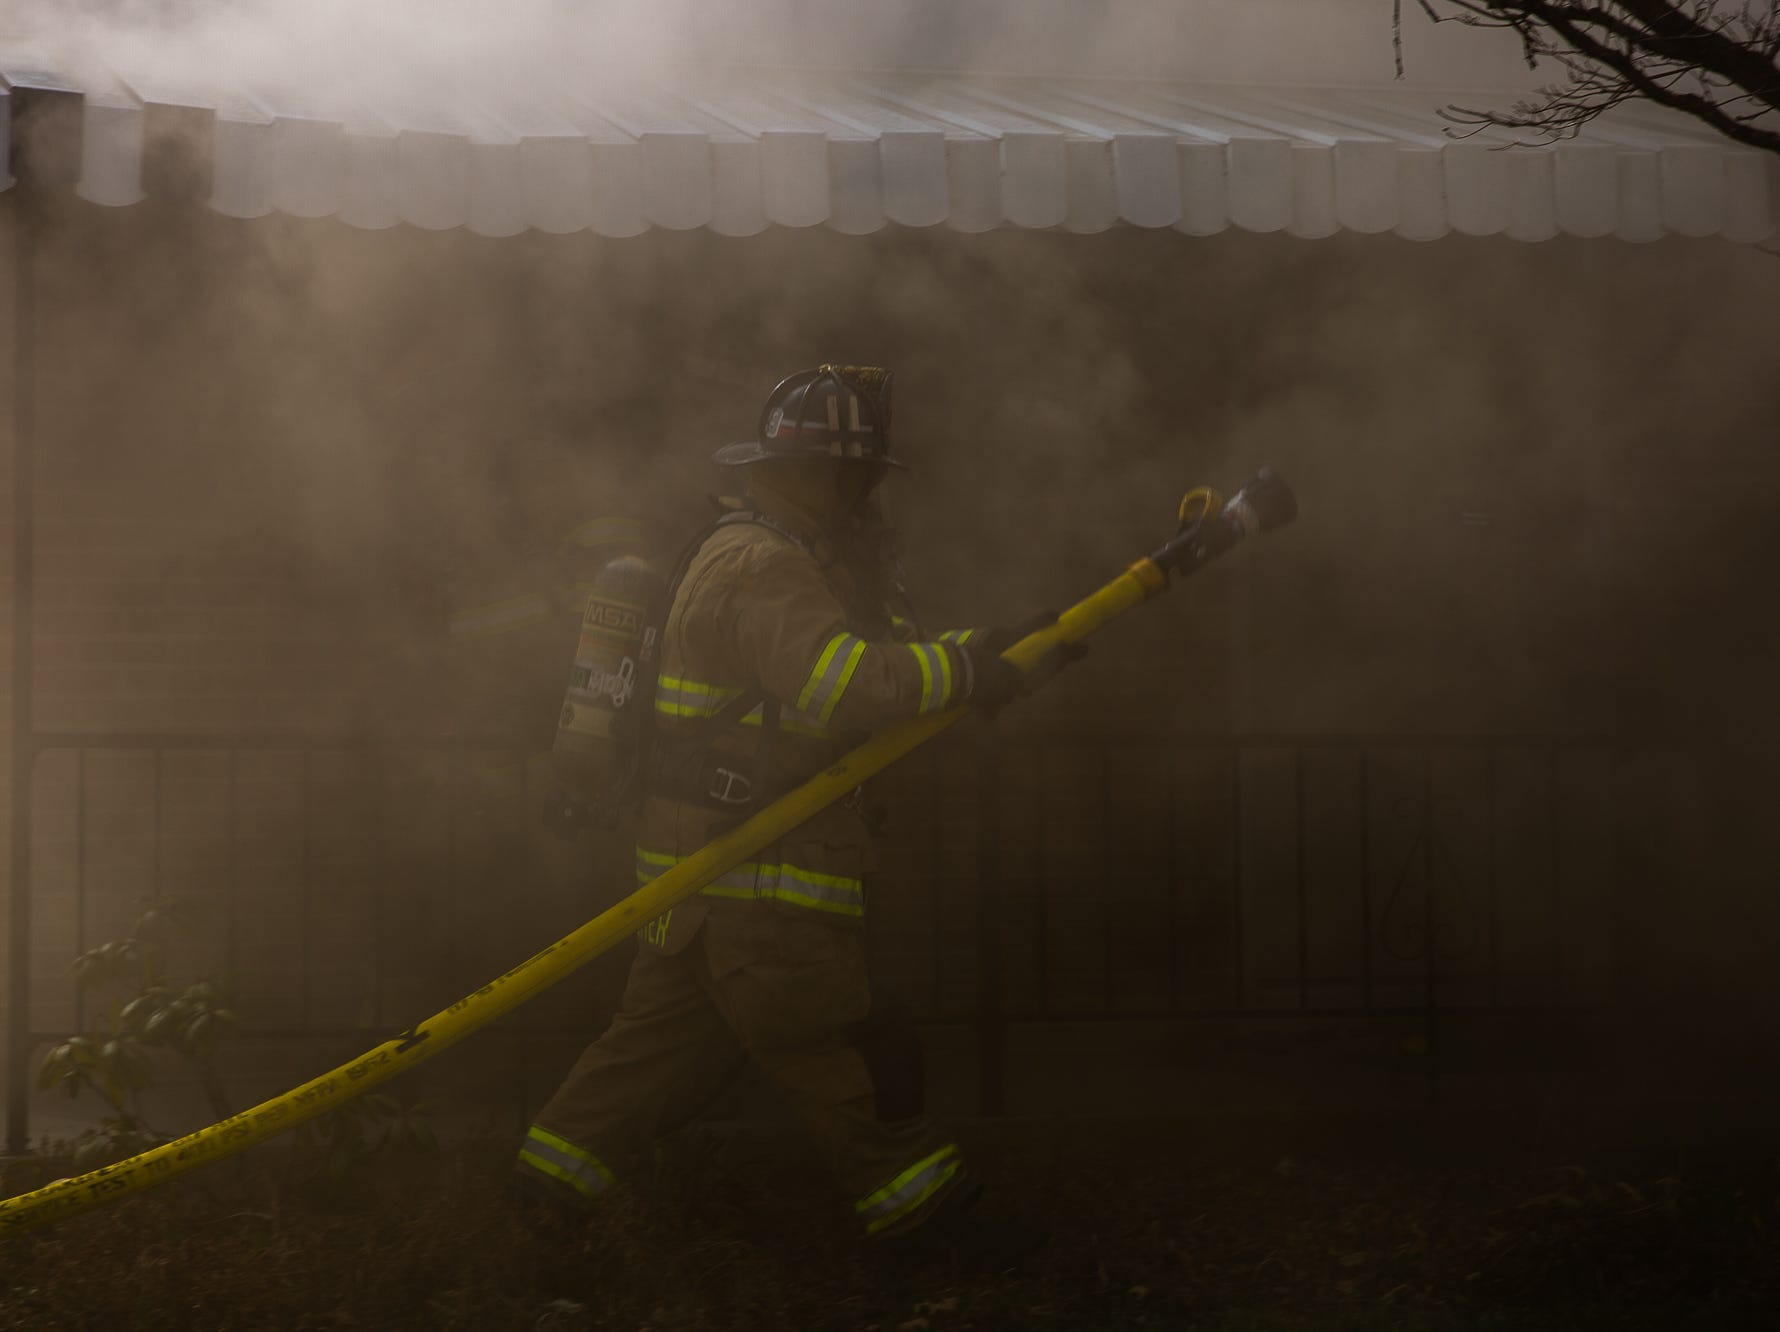 Volunteer firefighter Brady Cromer heads interior to begin the initial interior attack at the scene of a house fire on the 100 block of Mumma Ave., Saturday, March 30, 2019, in Penn Township. No one was injured in the fire, which appears to have been an accidental fire in the kitchen, said Hanover Area Fire & Rescue Chief Tony Clousher.